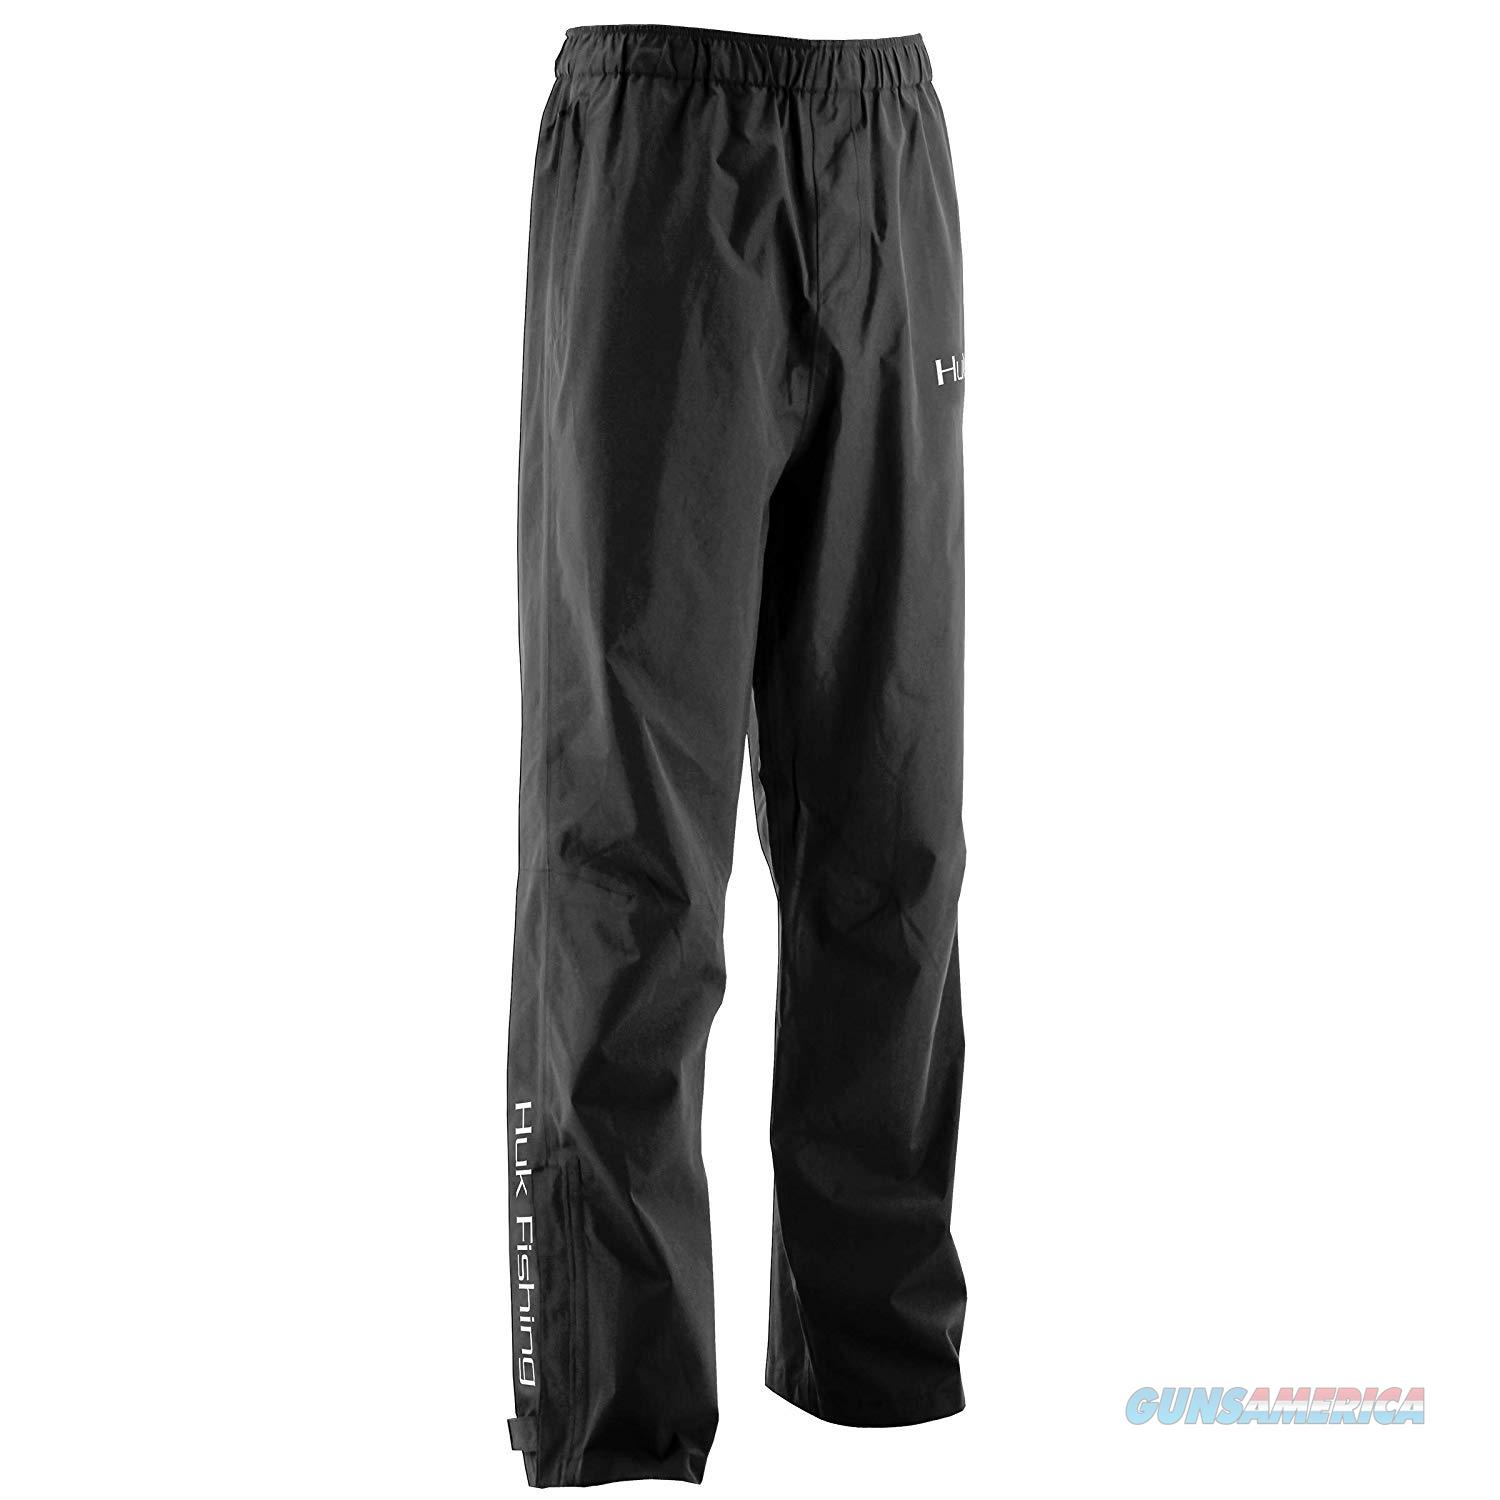 Huk Camo Packable Pants Black MD  Non-Guns > Hunting Clothing and Equipment > Clothing > Pants